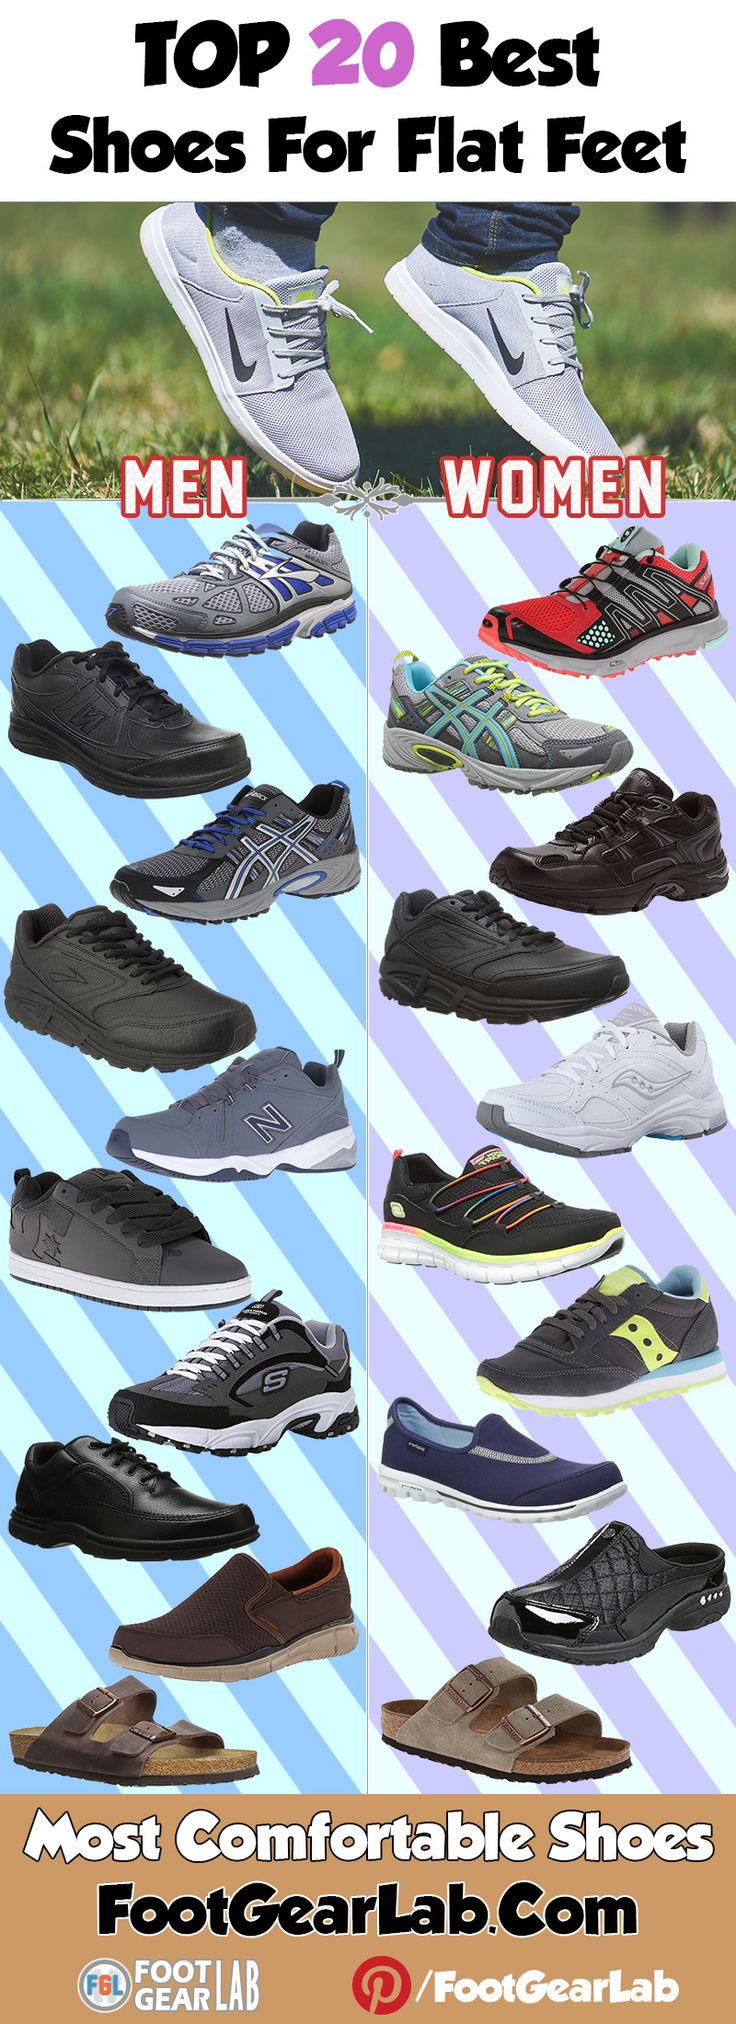 Best Shoes For Flat Feet Women and Men – Most Comfortable Shoes. @footgearlab